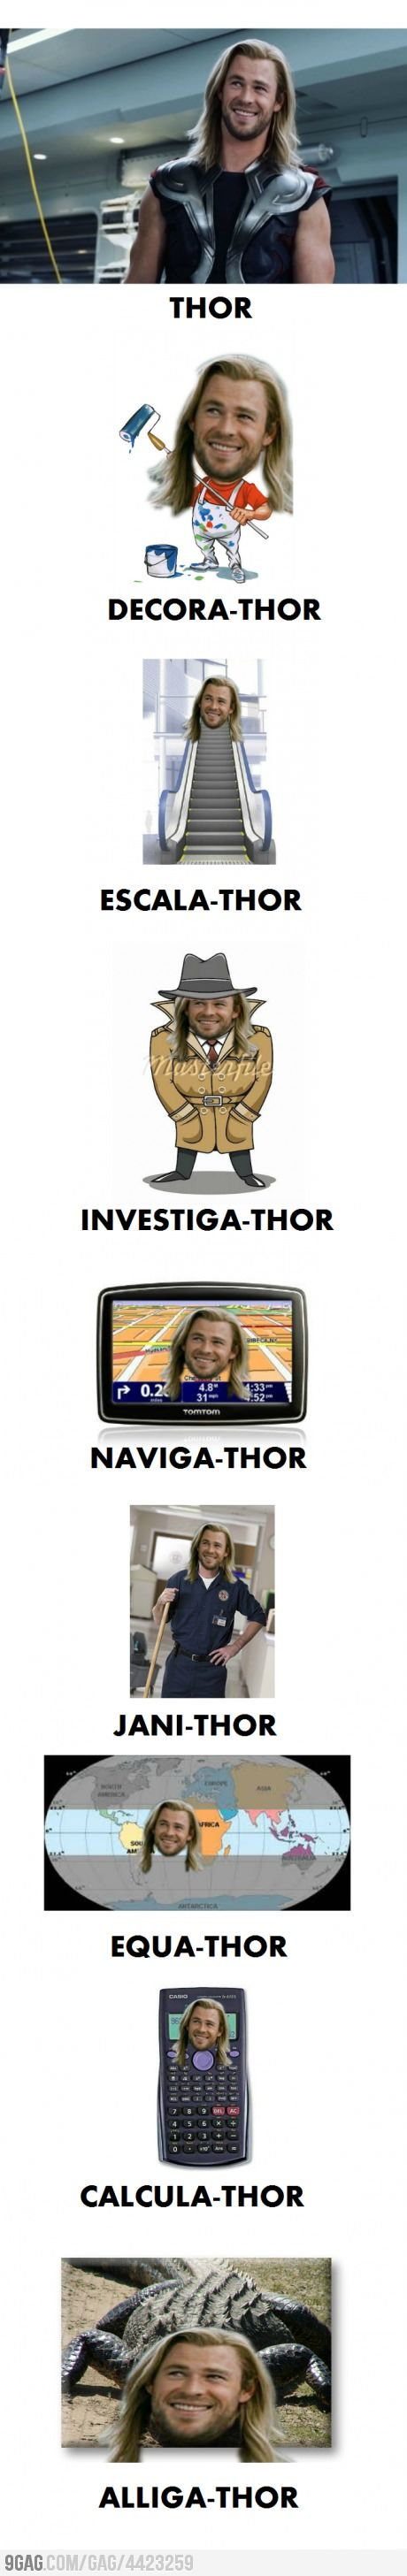 More of Thor